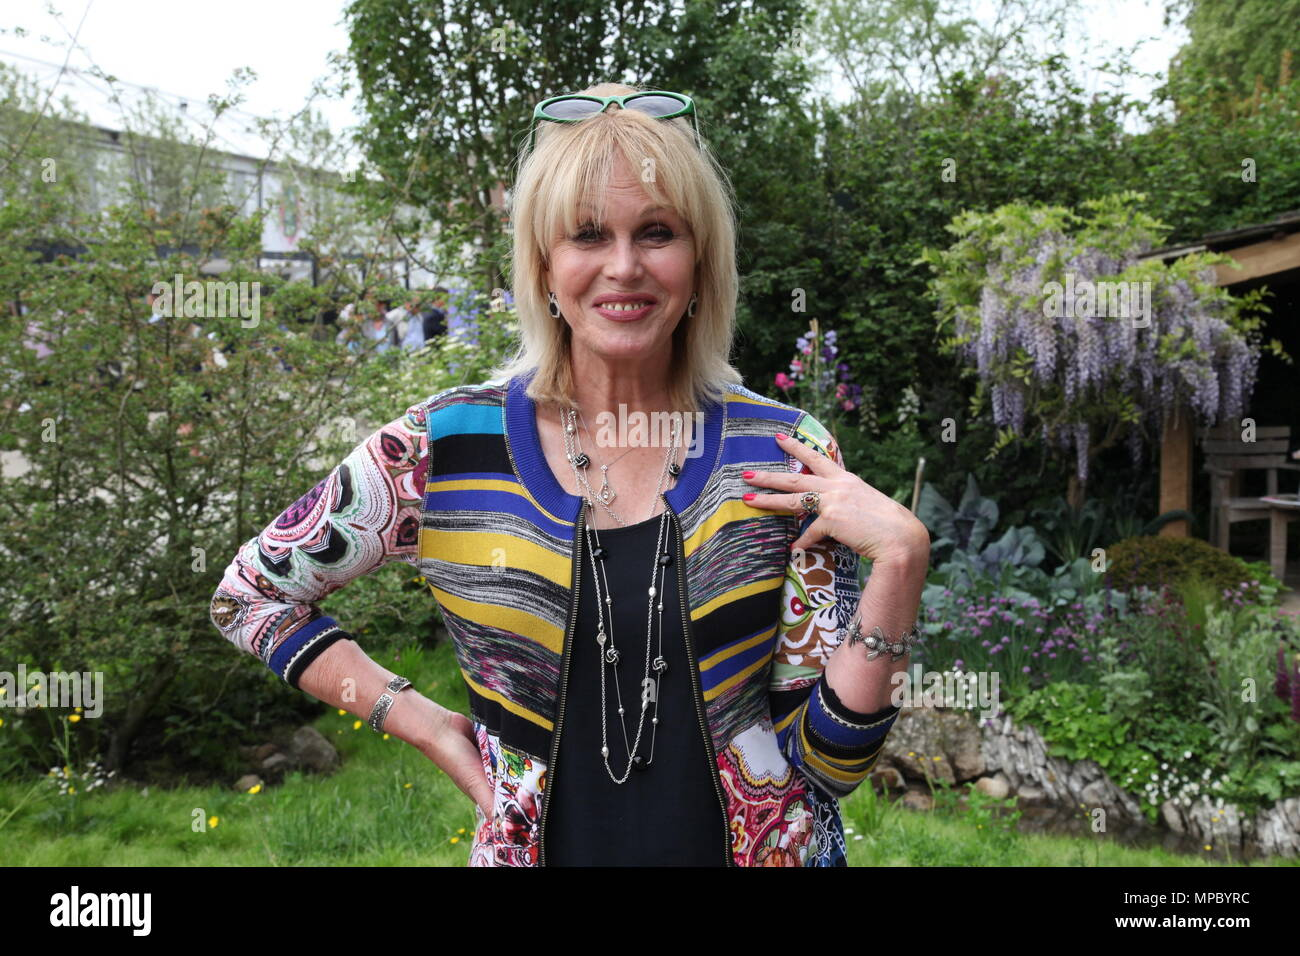 Chelsea, London, UK. 21st May, 2018. Chelsea, London, UK. 21st May 2018. Joanna Lumley on the Welcome to Yorkshire garden at Chelsea Flower Show 2018, designed by Mark Gregory for Landformconsultants.co.uk Credit: Jenny Lilly/Alamy Live News - Stock Image